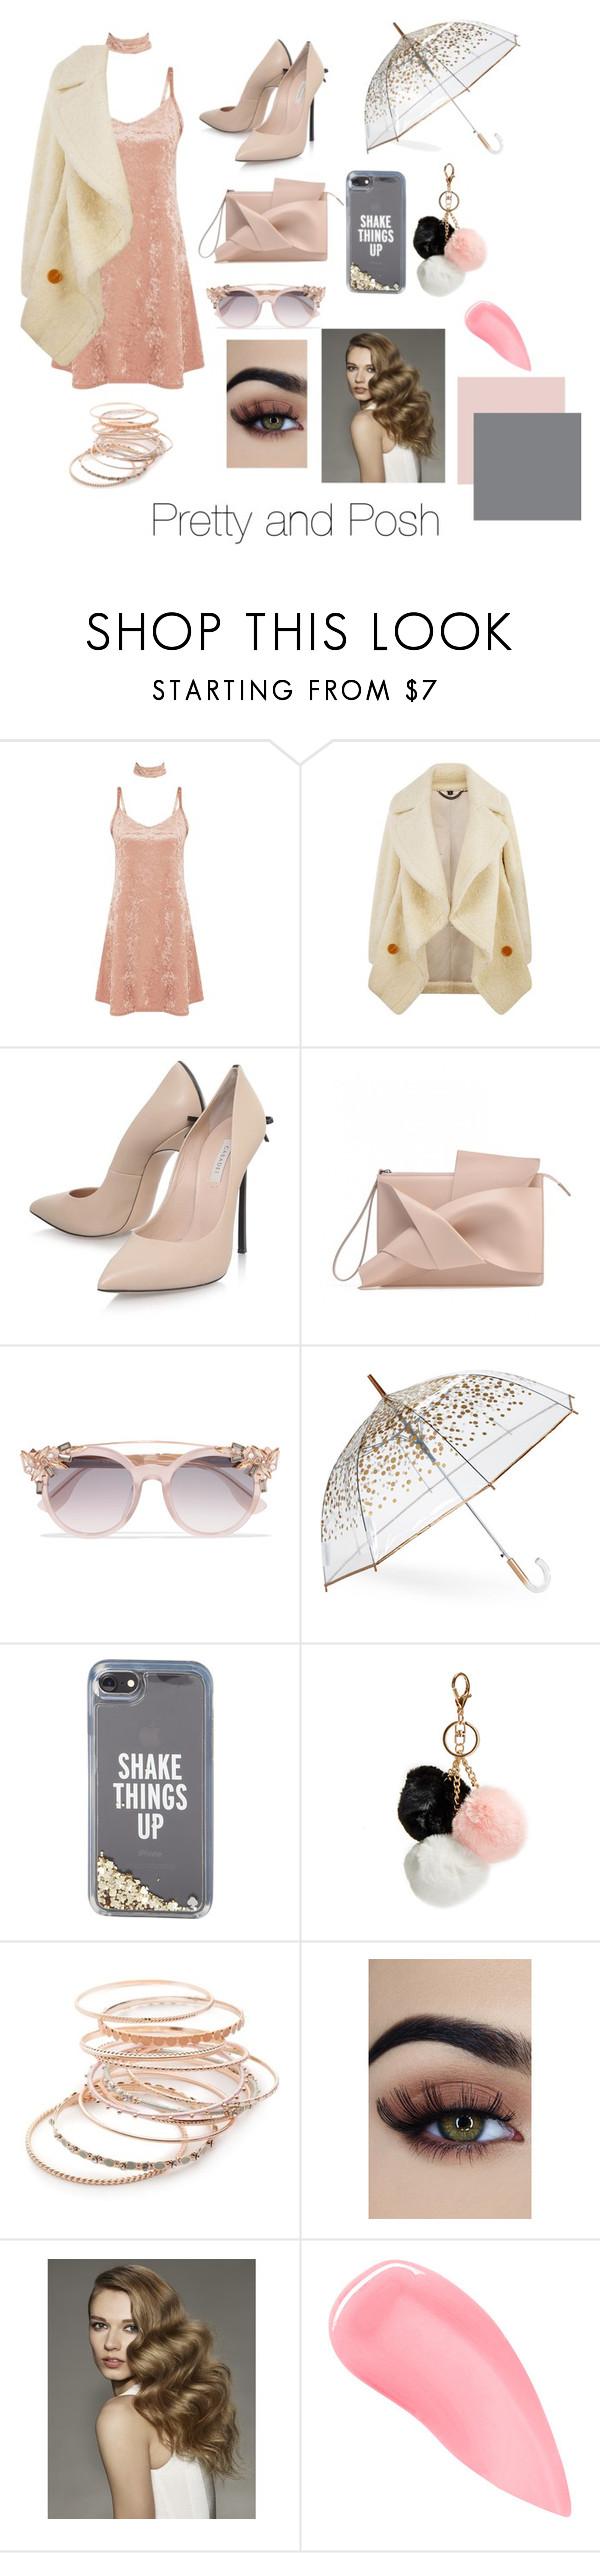 """Pretty and Posh"" by lydiagrayyoung on Polyvore featuring Burberry, Casadei, Jimmy Choo, ShedRain, Kate Spade, GUESS, Red Camel and Kevyn Aucoin"